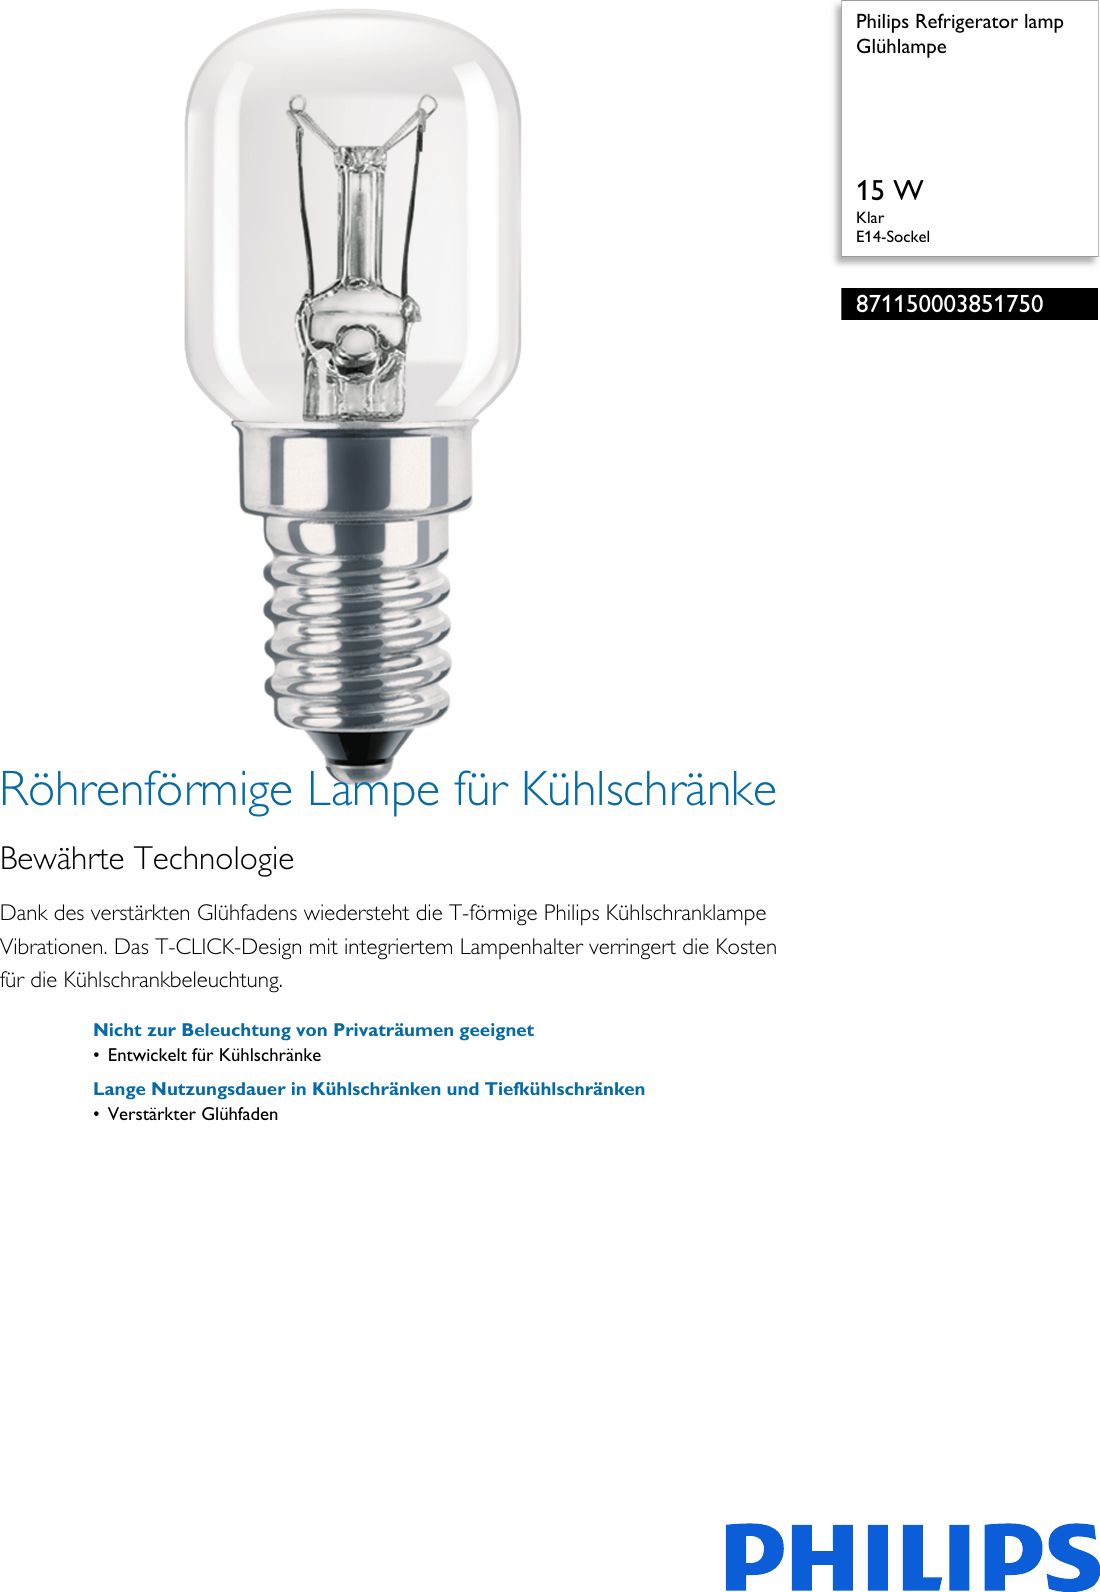 Philips 871150003851750 Glühlampe User Manual Datenblatt